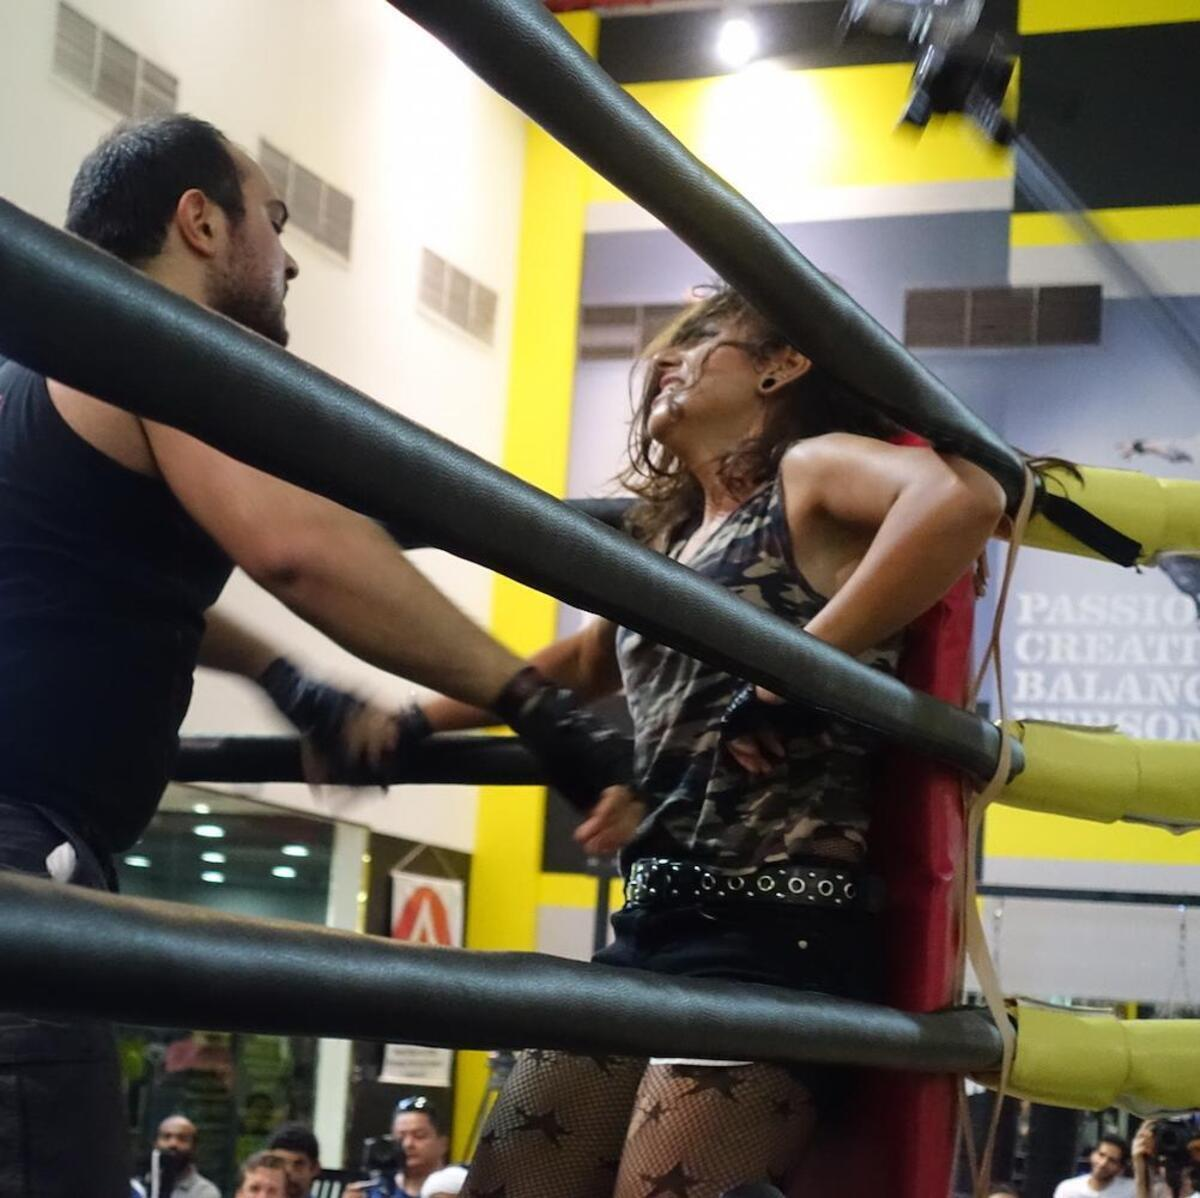 the-first-woman-pro-wrestler-in-the-middle-east-1442841311